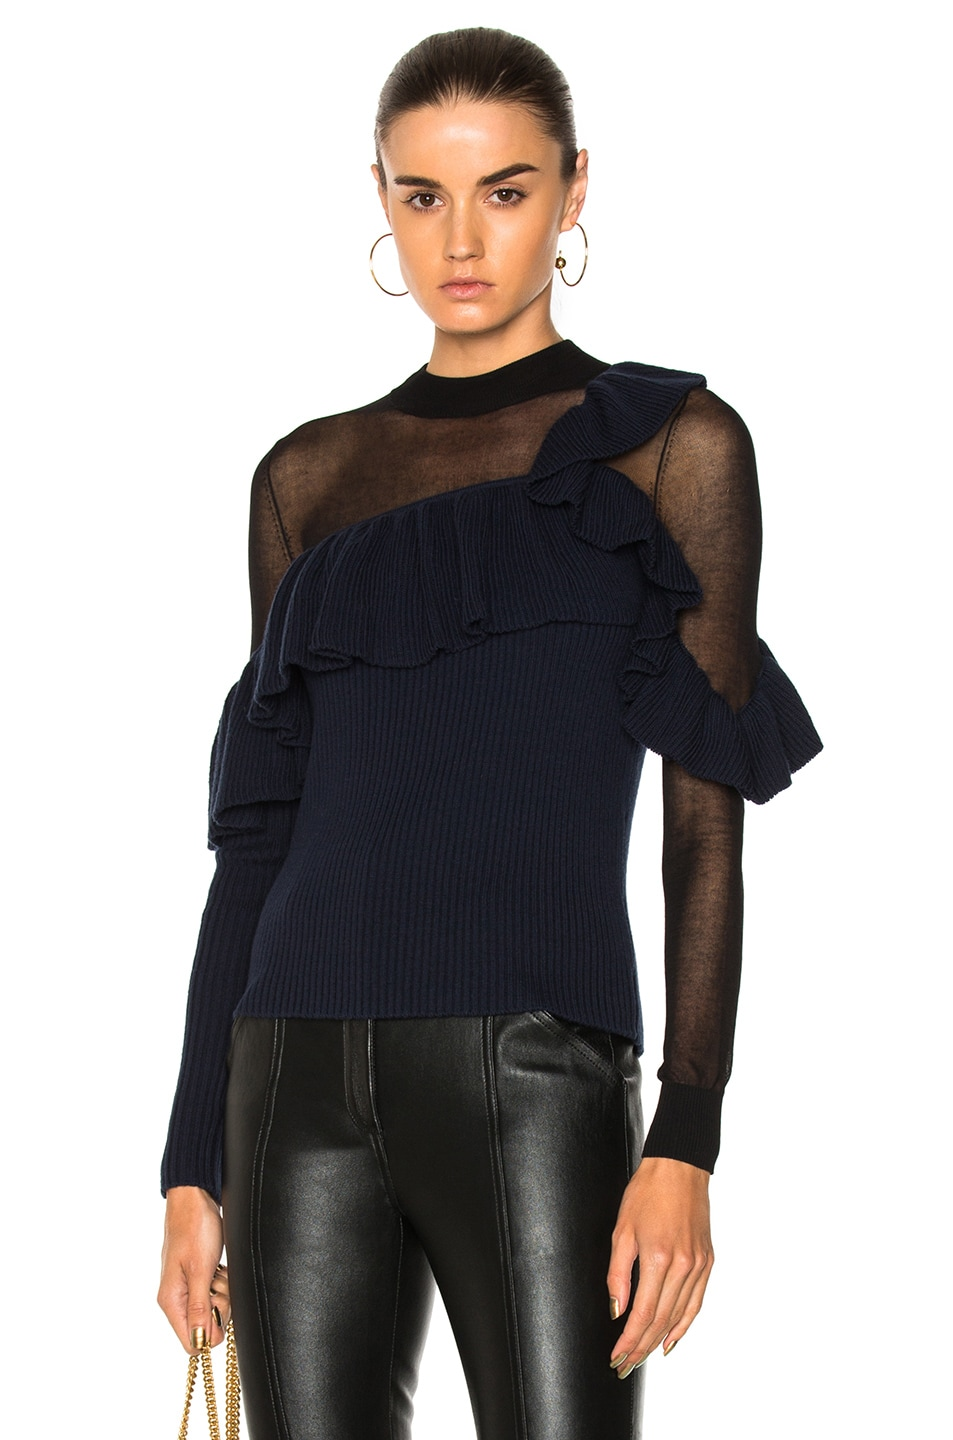 Self-Portrait  ASYMMETRIC FRILL SWEATER IN BLACK, BLUE.